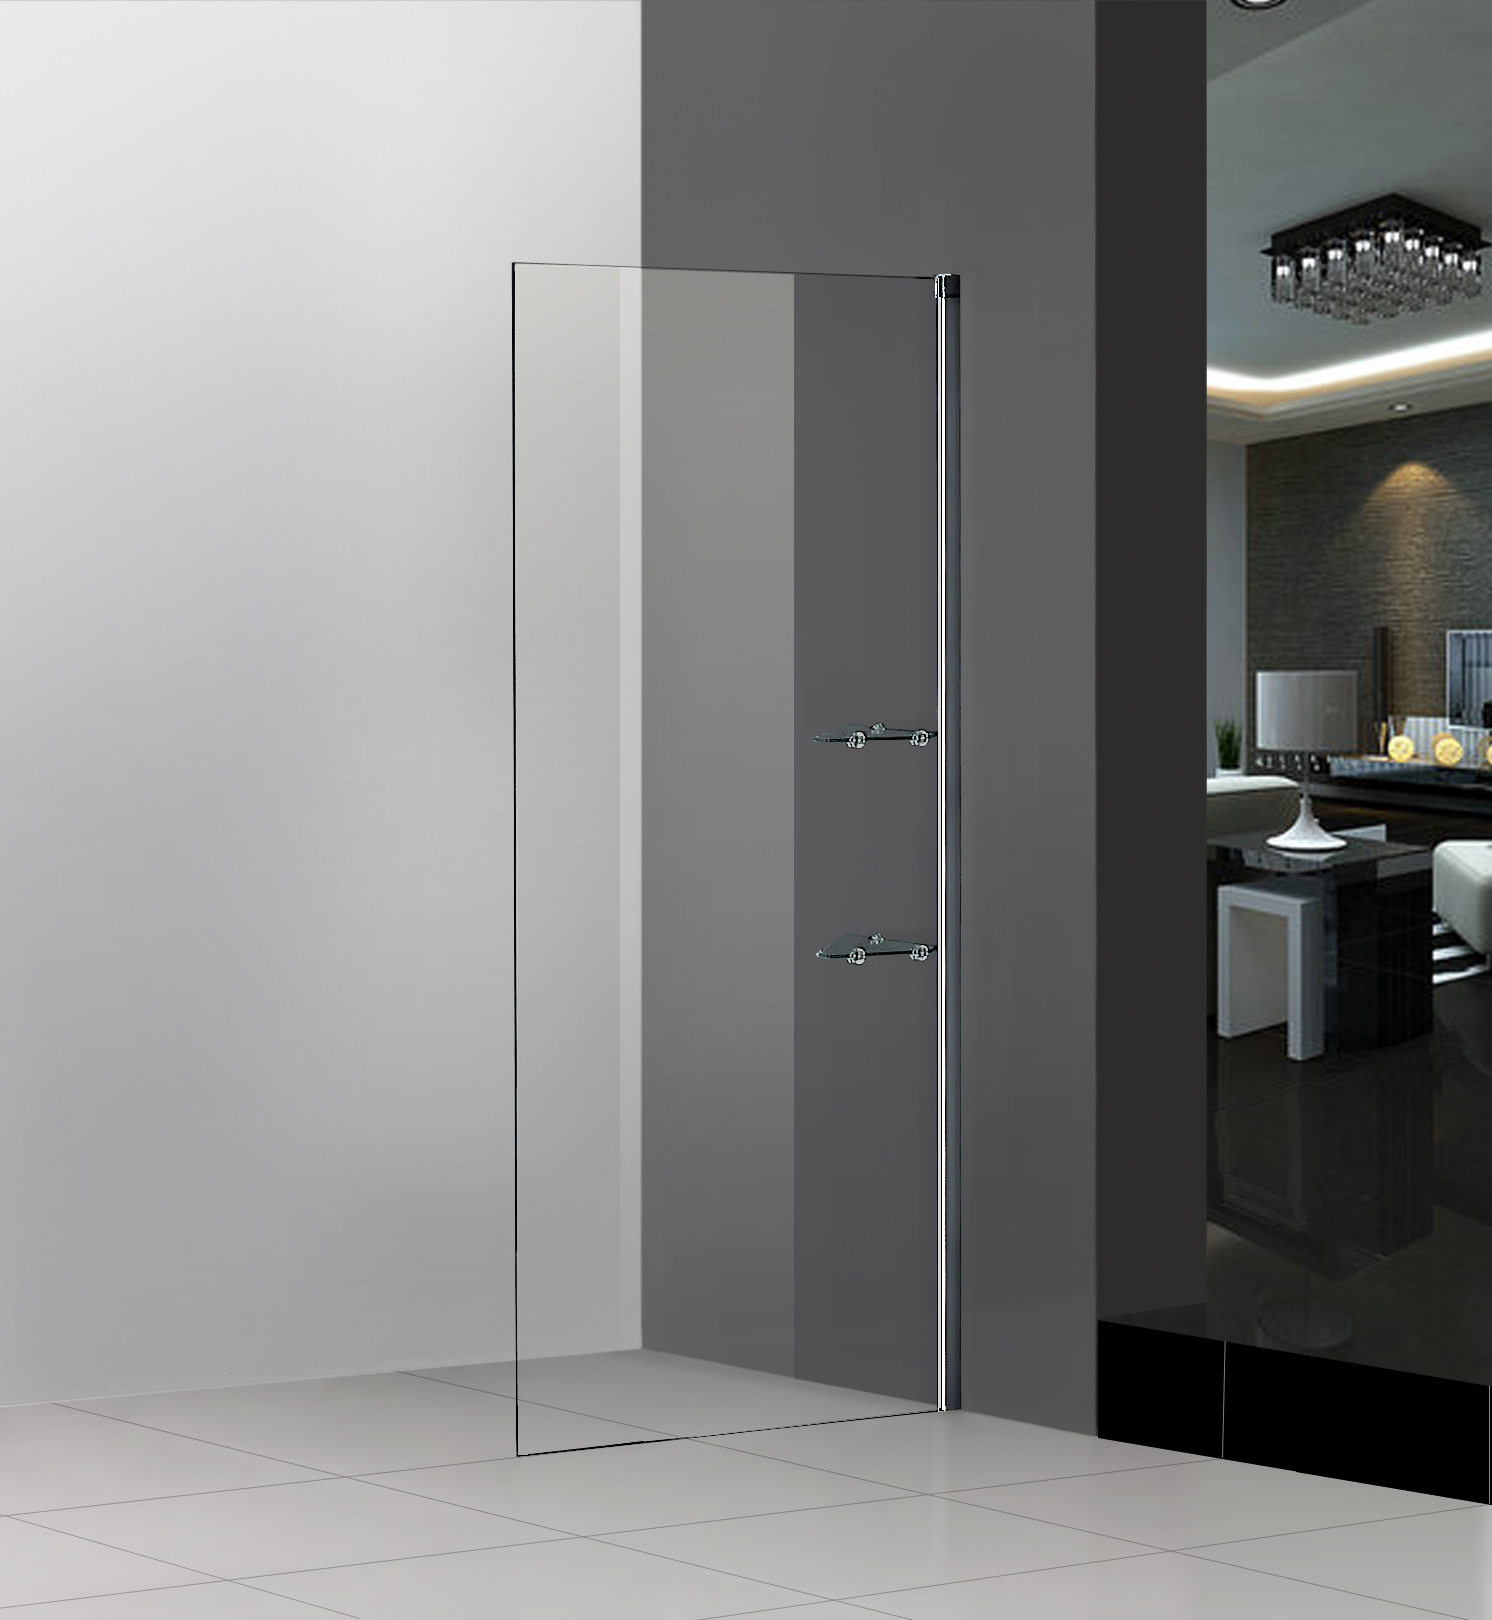 koncept co kartell enclosures collections room shower everythingbathroom uk wet bath screen products